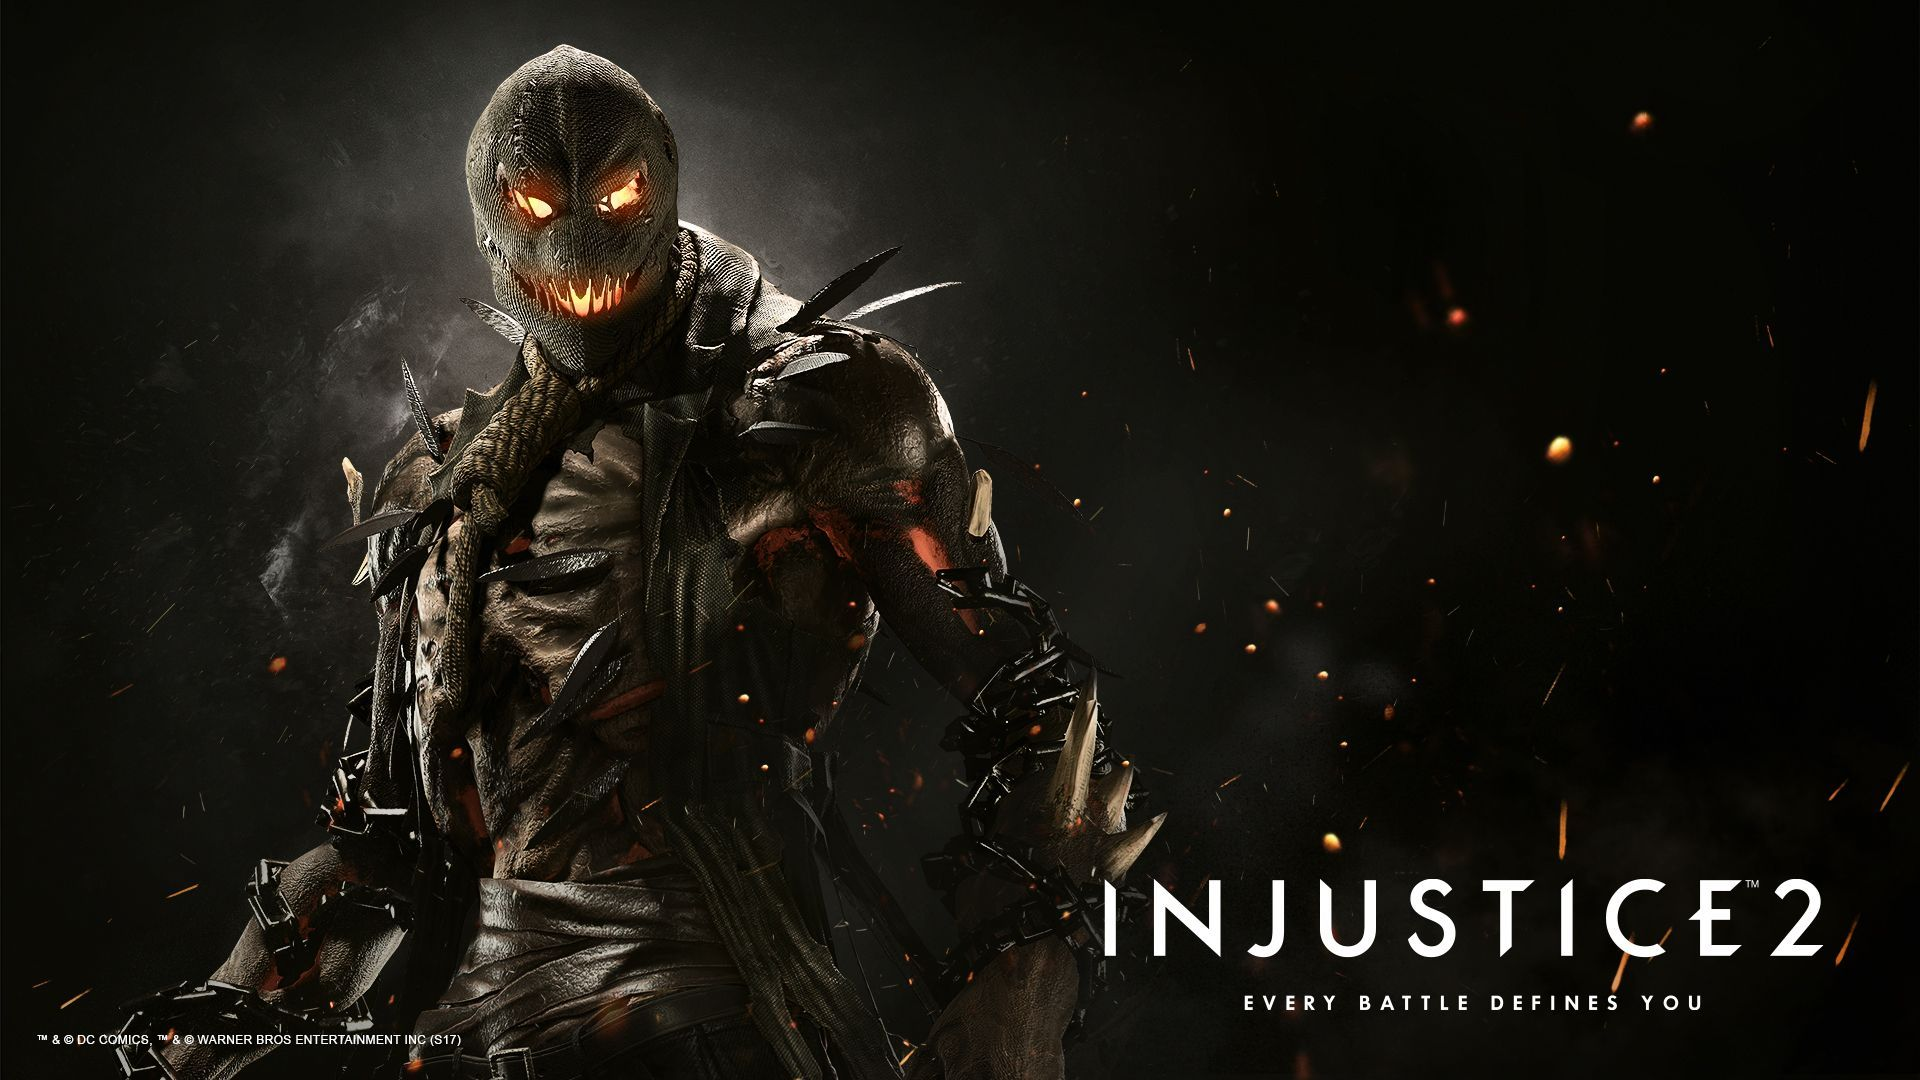 Injustice2 Scarecrow Wallpaper 1920x1080 38 Jpg 1920 1080